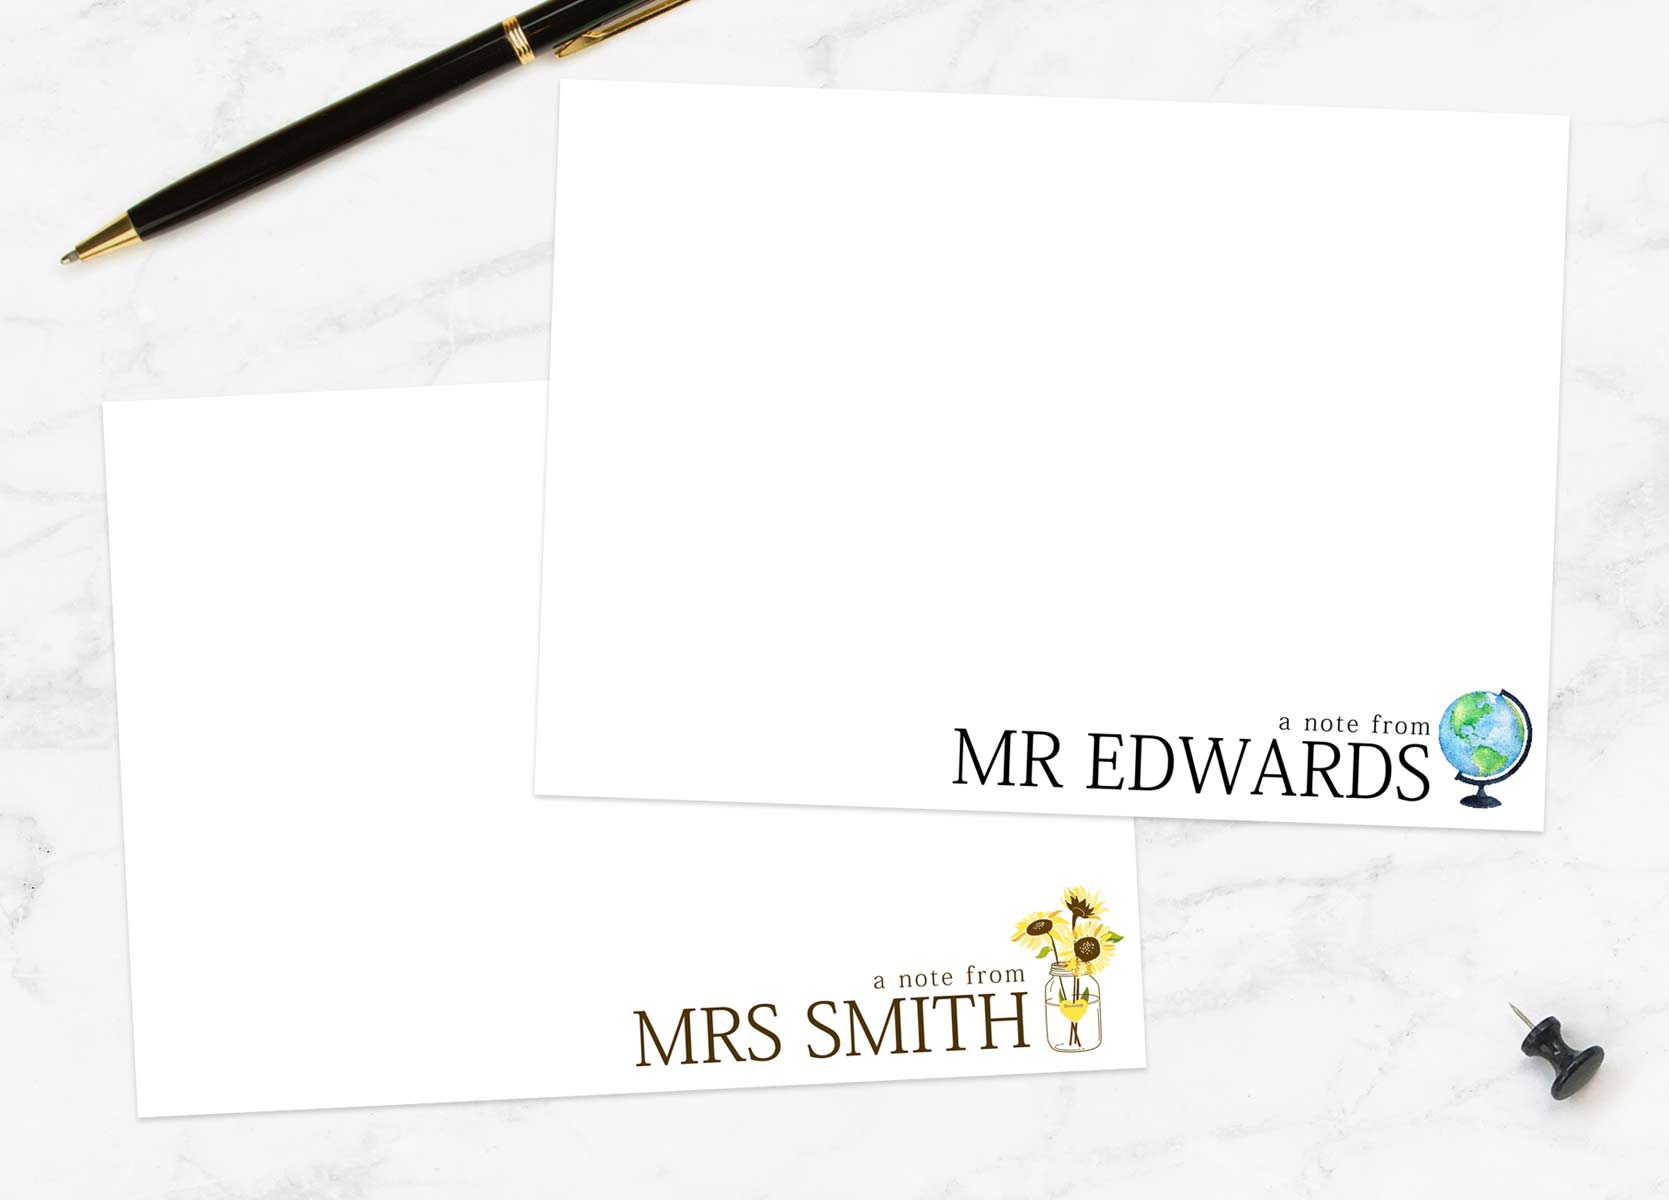 Personalised Writing Sets